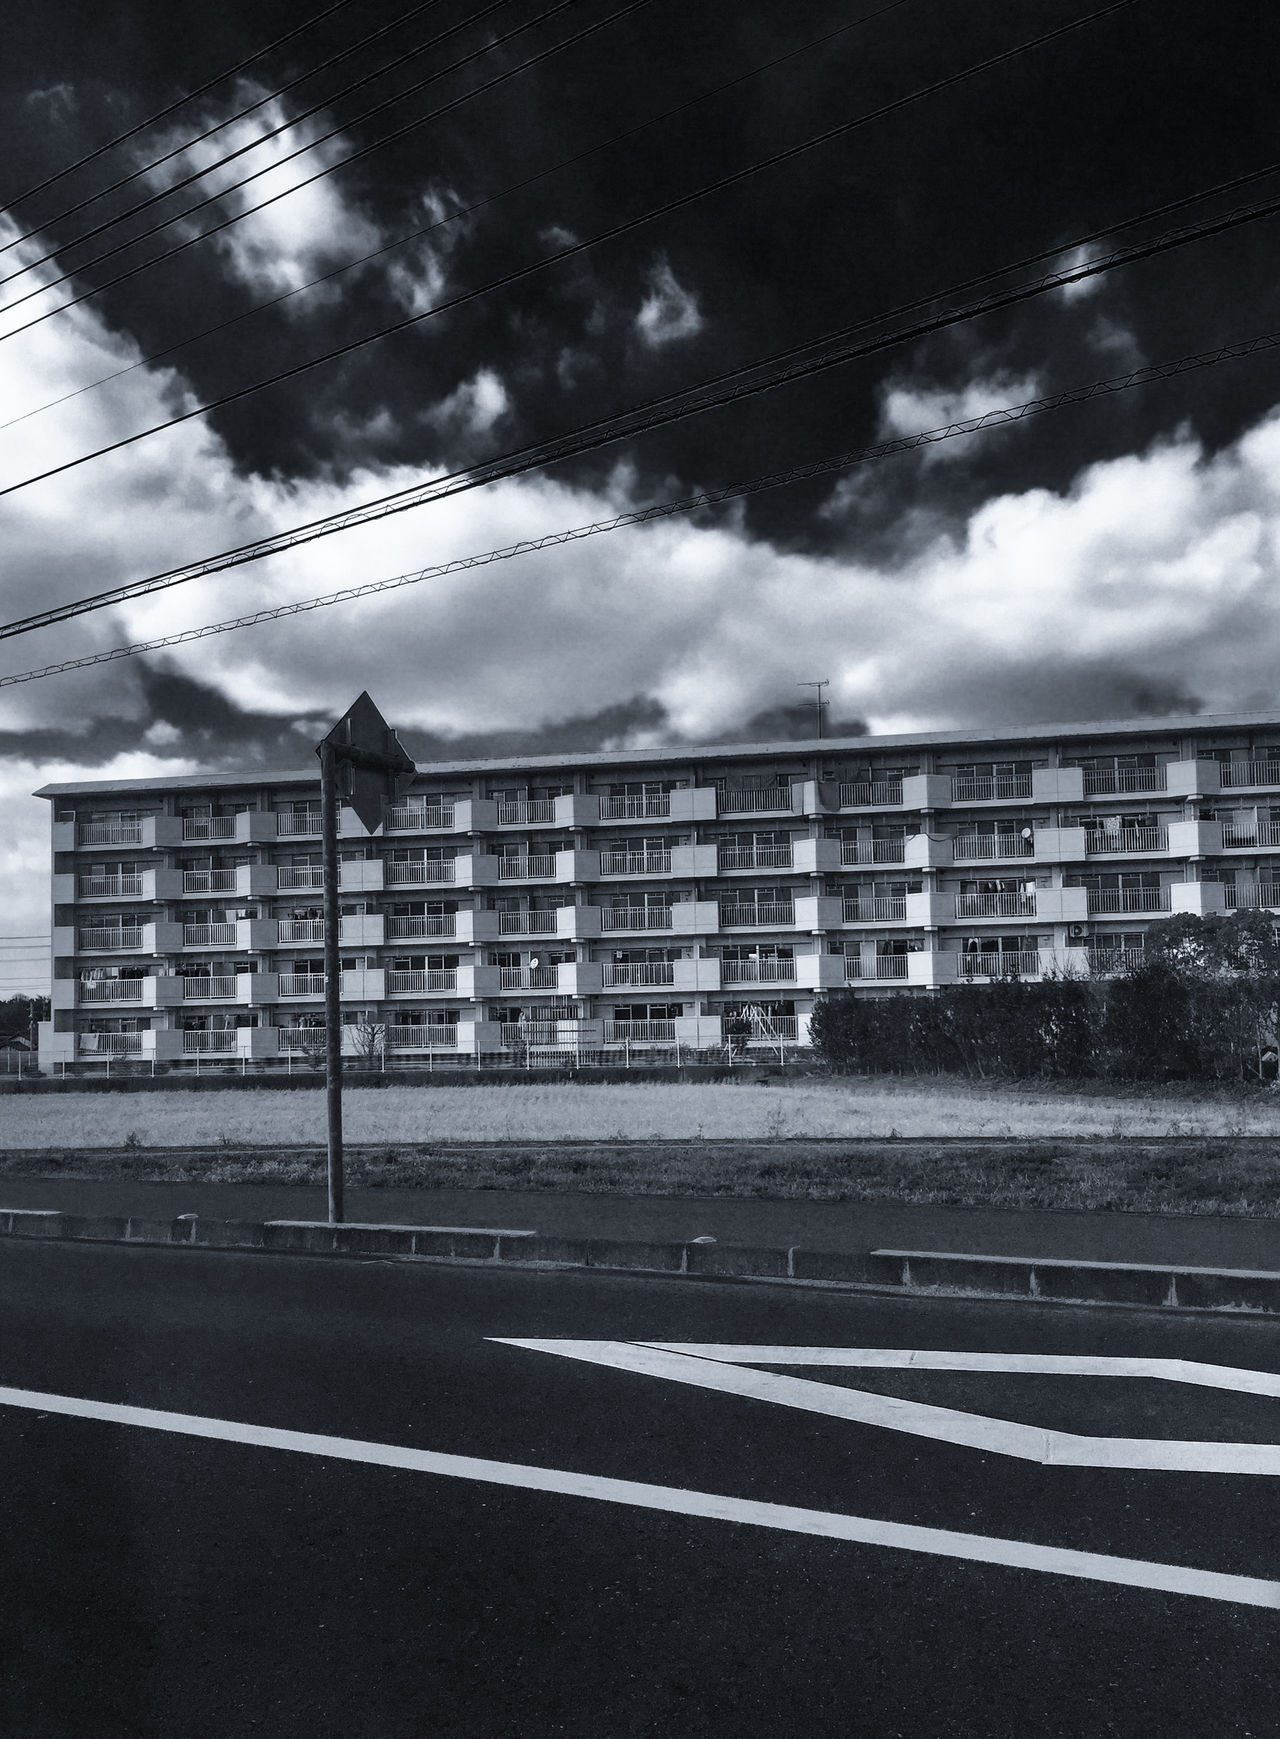 // dark bright // Architecture Blackandwhite Bnw Bnw_captures Bnw_collection Building Building Exterior Built Structure BYOPaper! City Cloud - Sky Clouds And Sky Day Empty Road Japan Monochrome No People Outdoors Road Signboard Sky The Architect - 2017 EyeEm Awards The Street Photographer - 2017 EyeEm Awards Tranquility Ultimate Japan